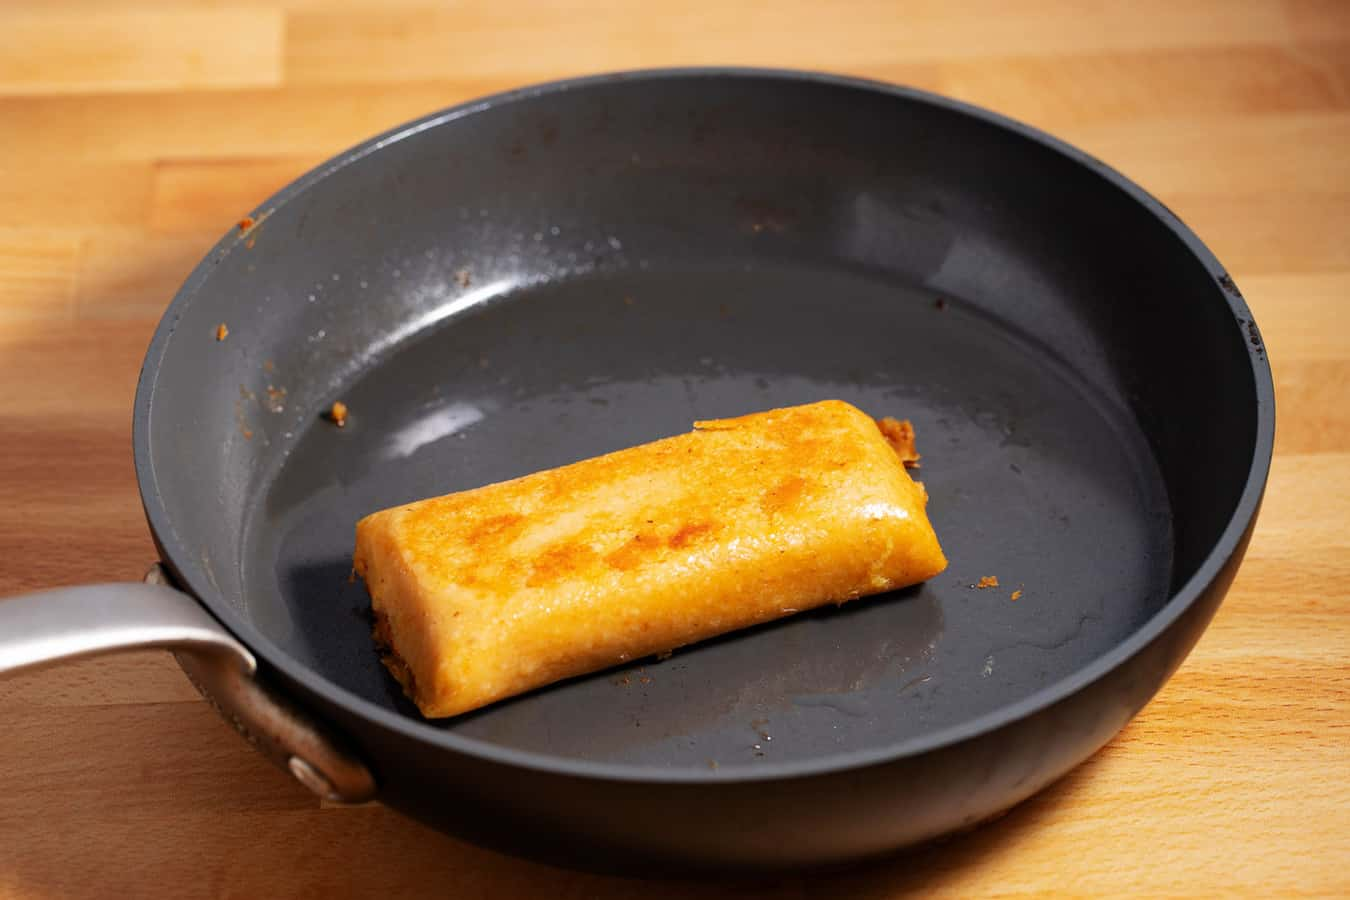 cooked tamale in skillet